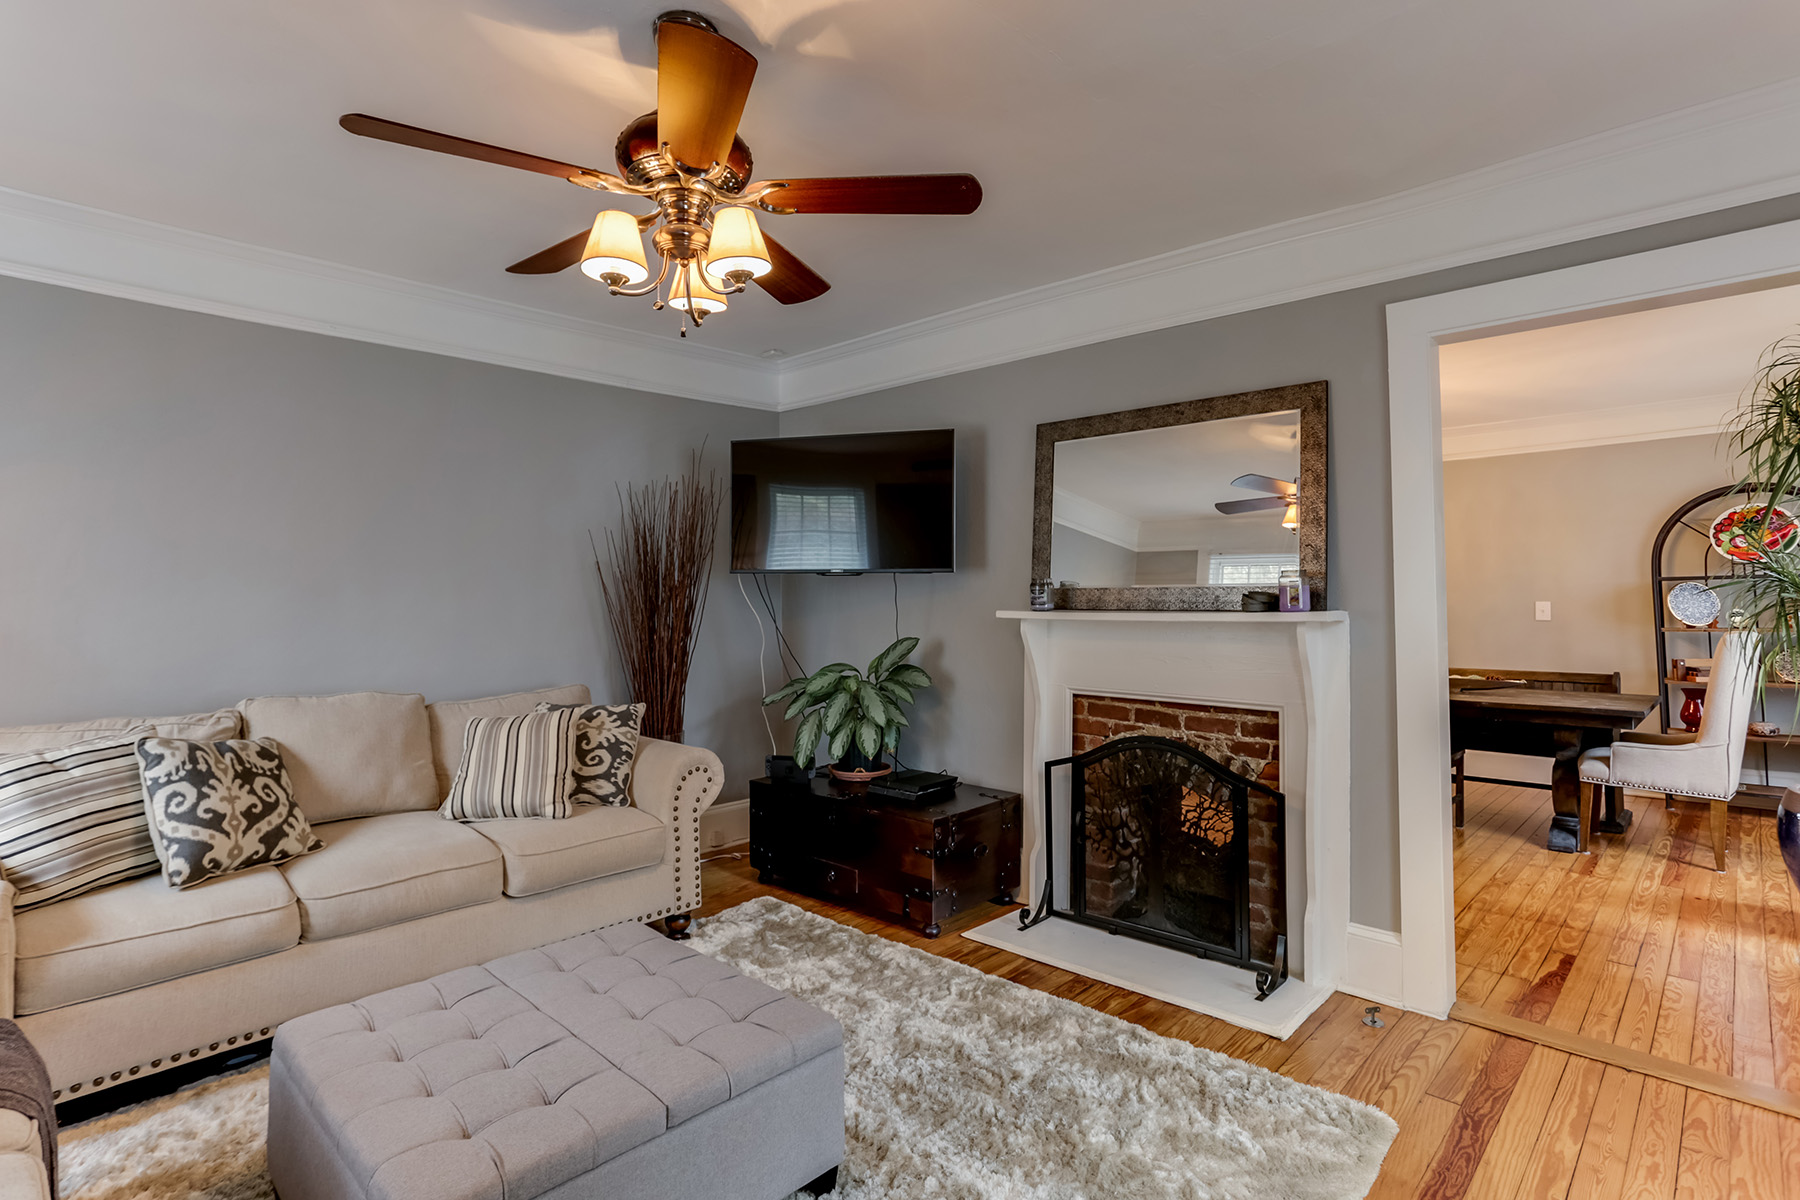 Single Family Home for Sale at Charming Historic Bungalow 2875 Parrott Ave Atlanta, Georgia 30318 United States